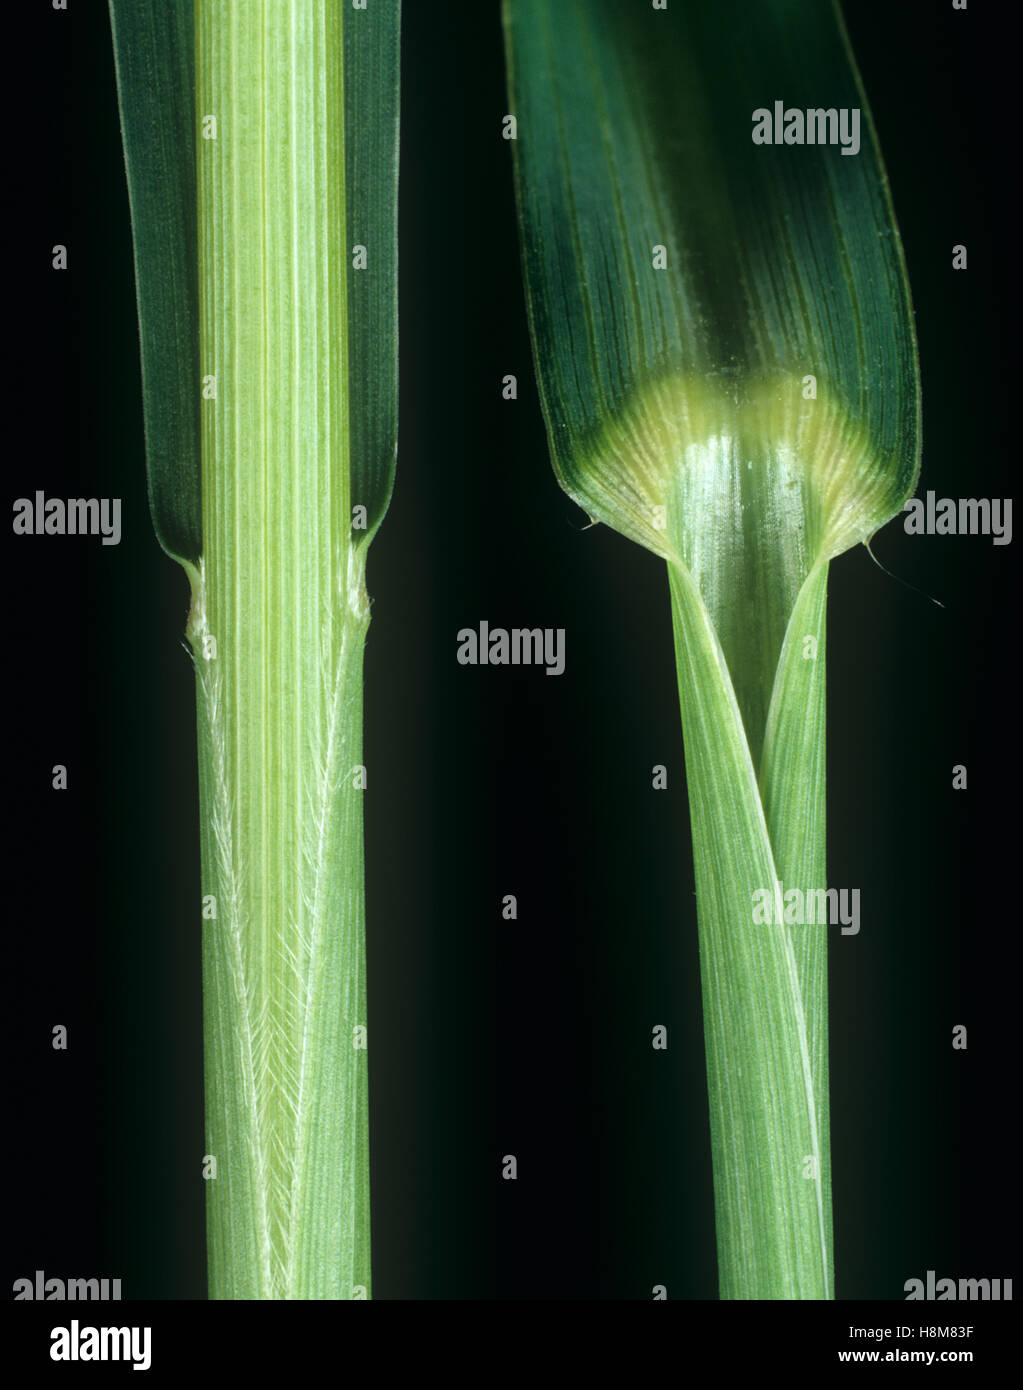 Jungle rice, Echinochloa colona, leaf ligule at the node and leafstalk of an agricultural grass weed - Stock Image